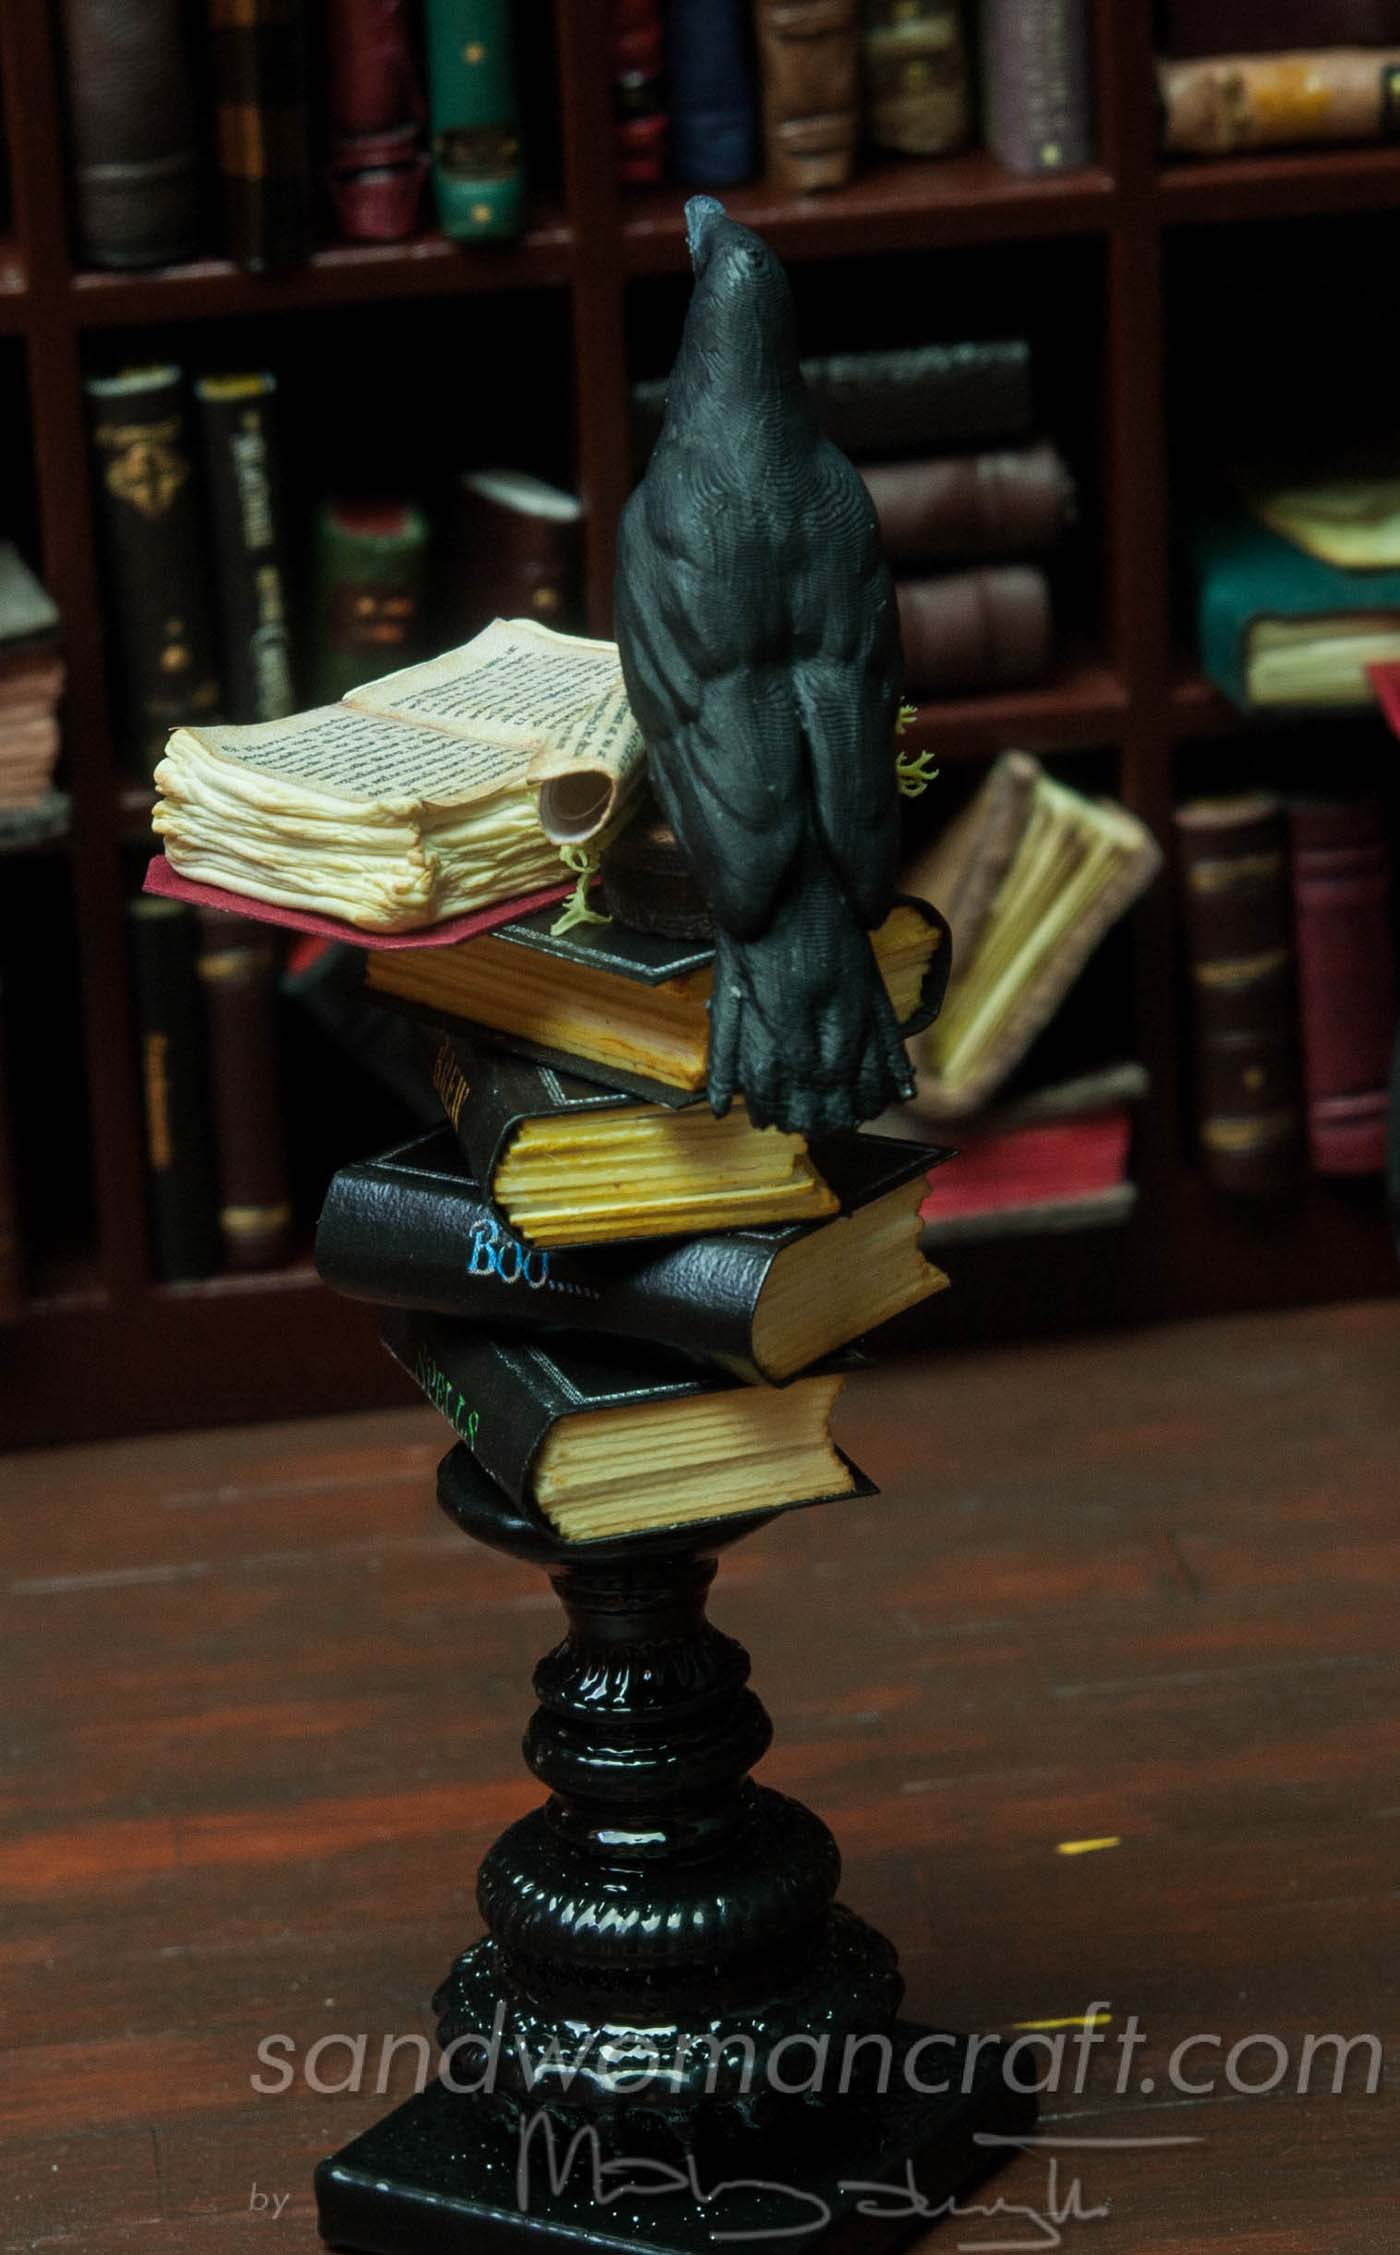 Miniature book stack with crow on black stand